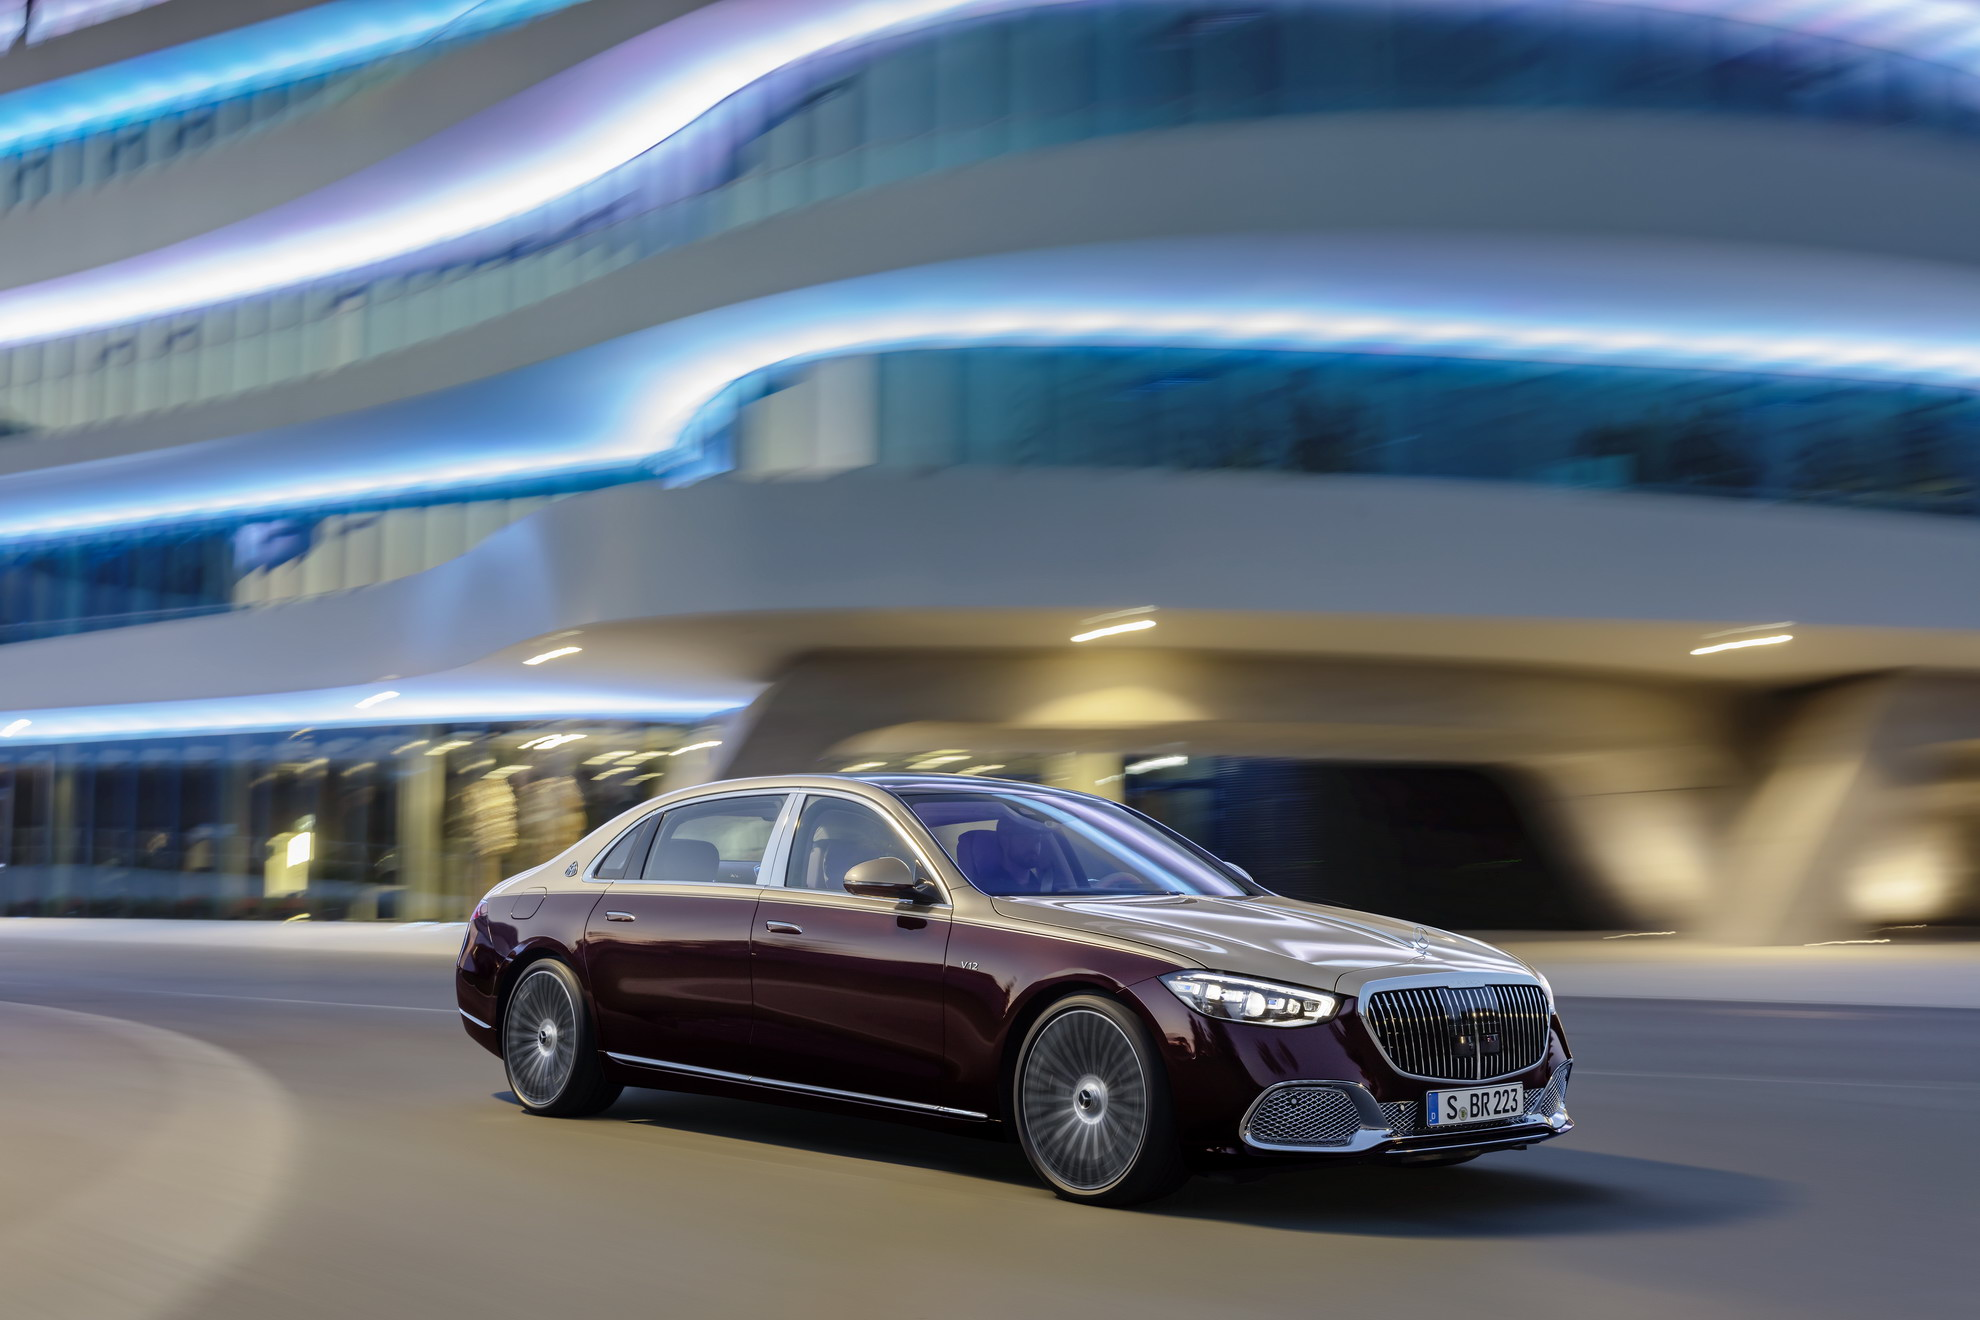 Mercedes Maybach S680 4matic 2022 (4)